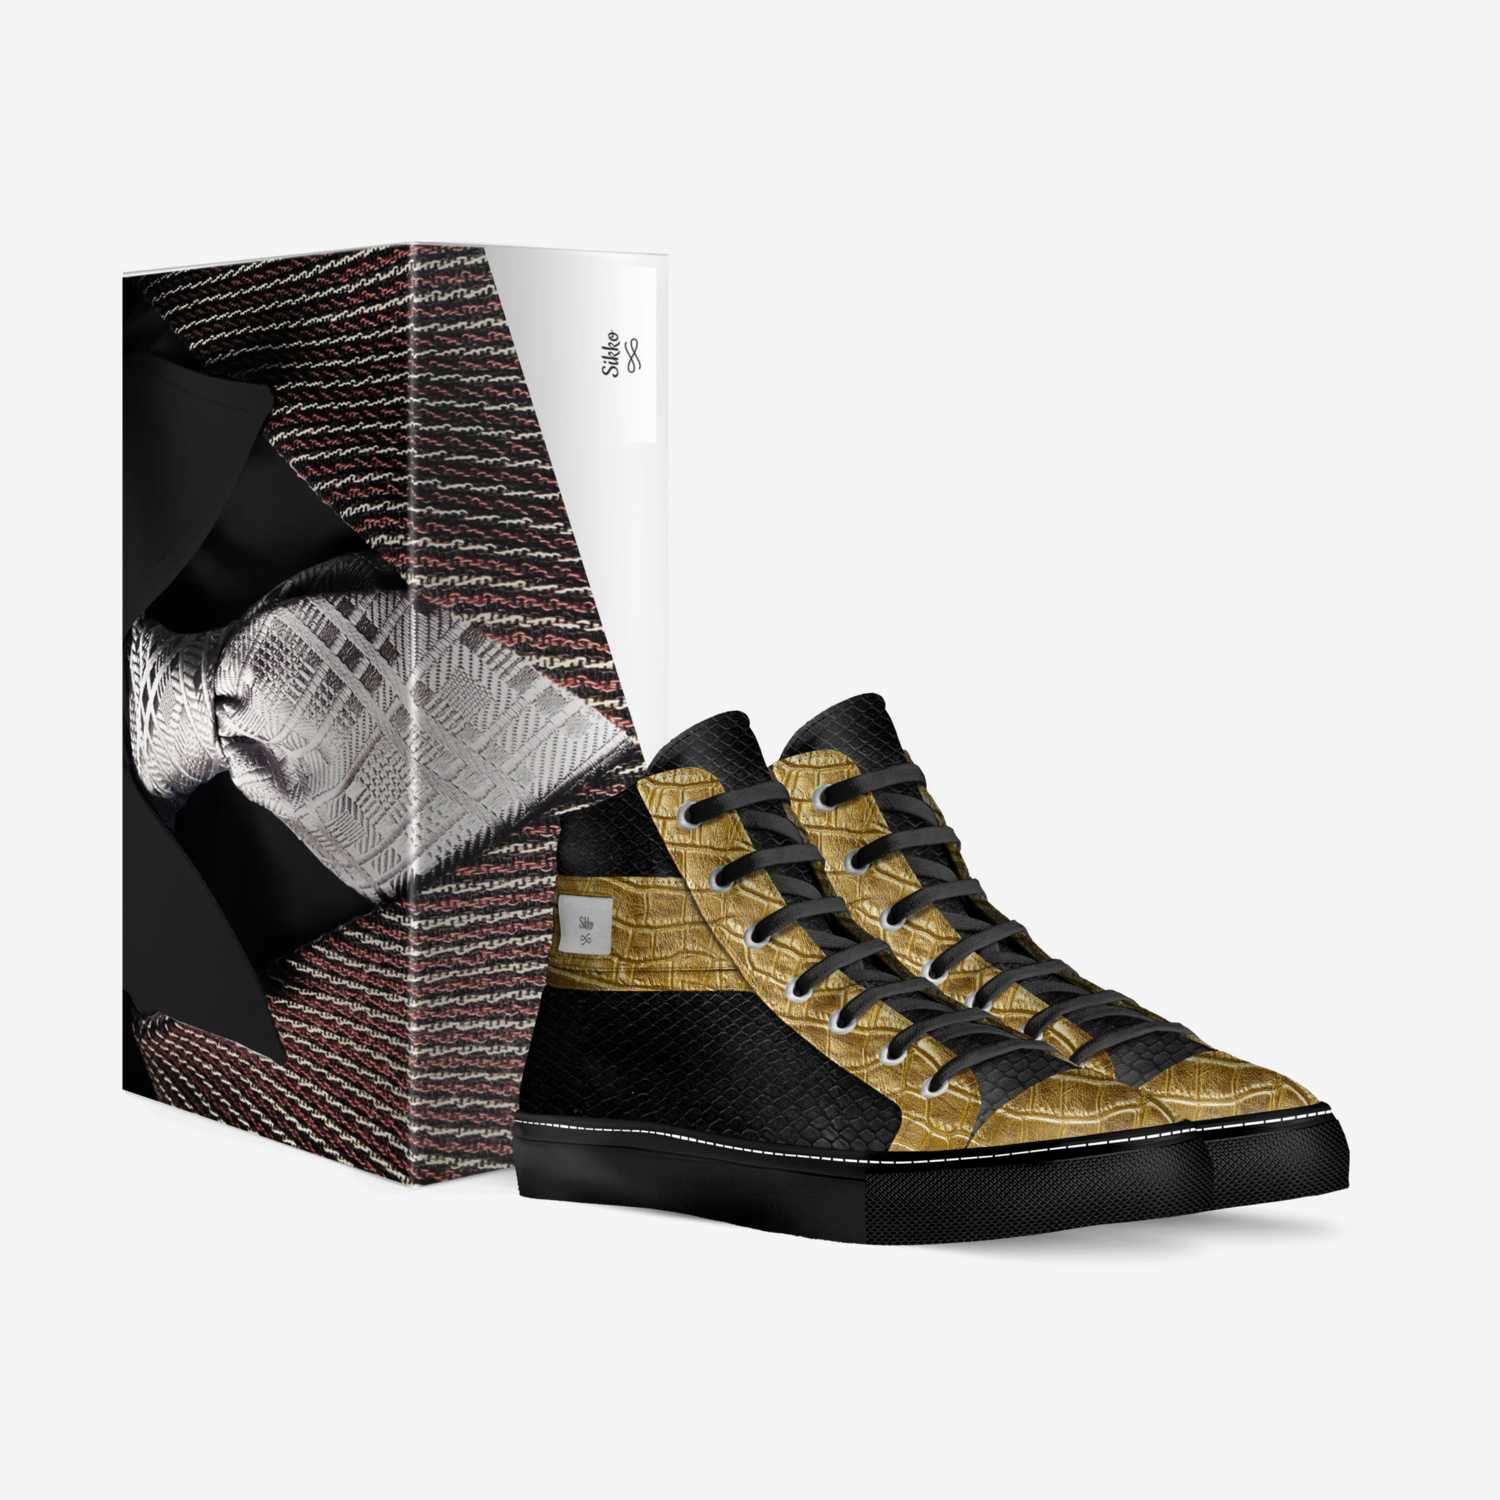 Sikko custom made in Italy shoes by Nikita Seals | Box view